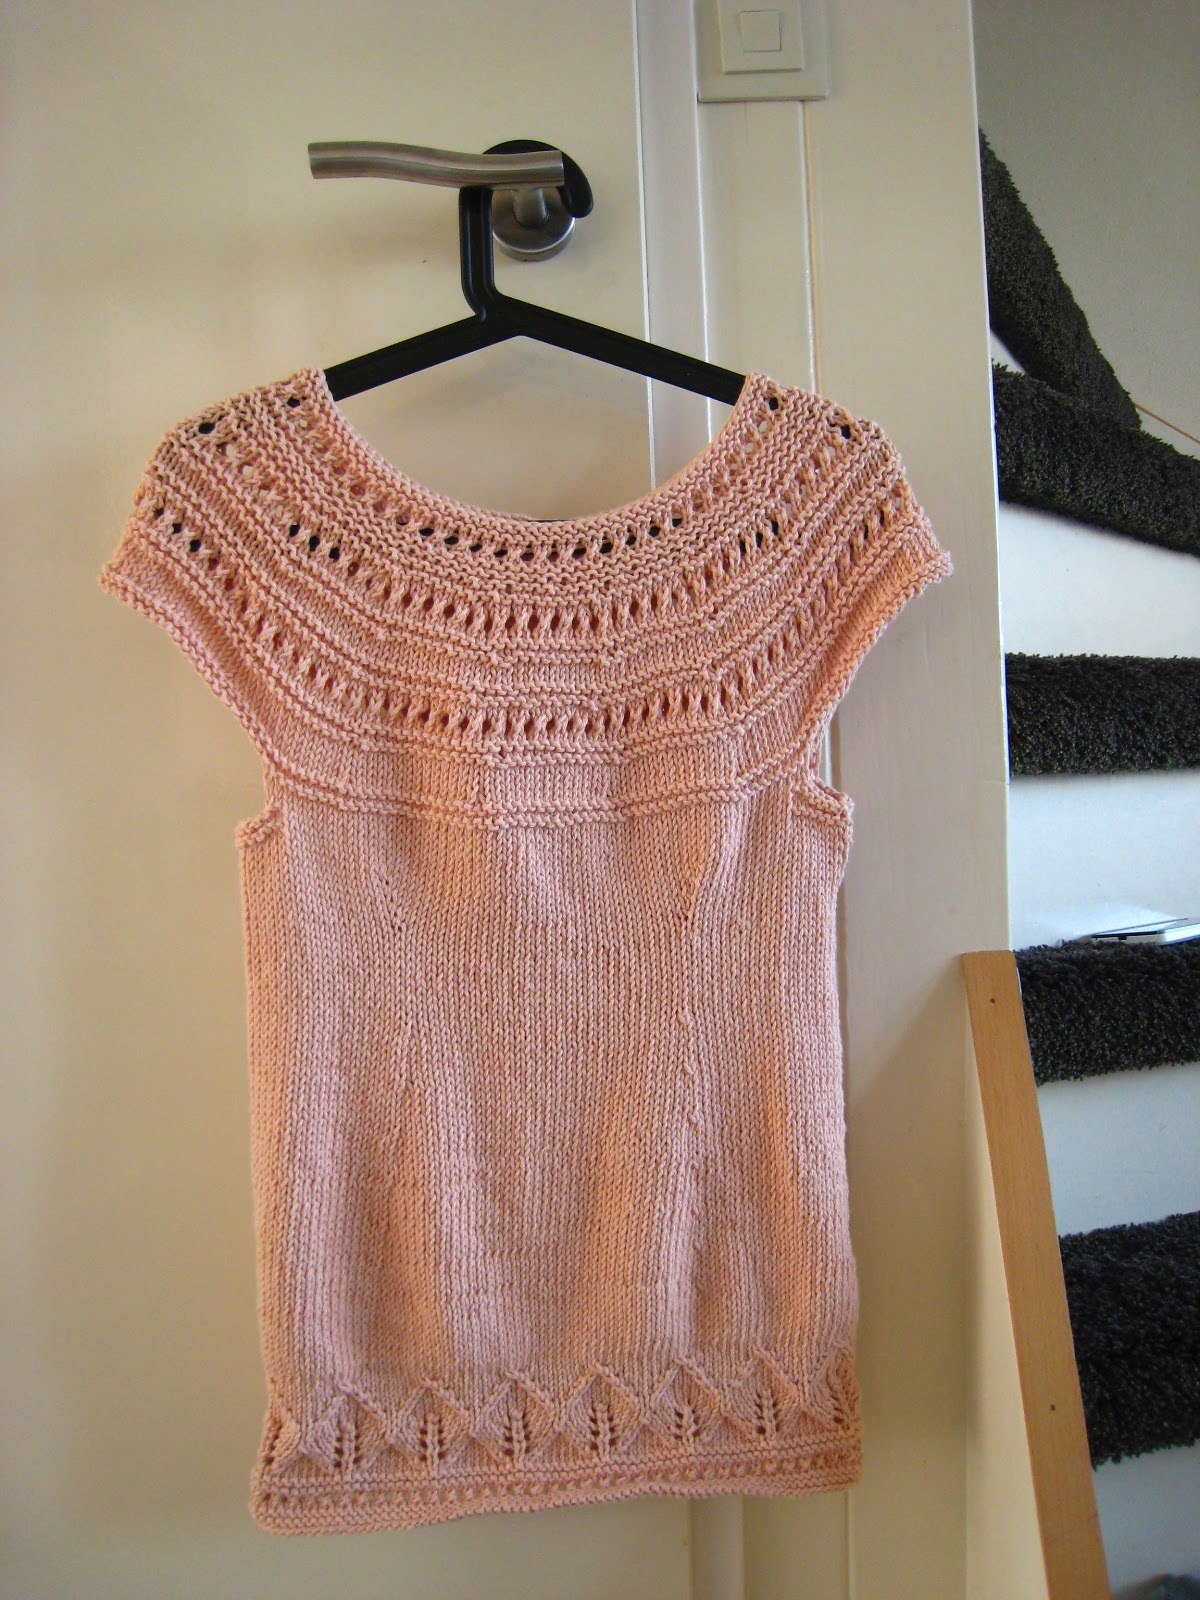 Oh Milly!: Knitted DROPS top with lace pattern and round yoke